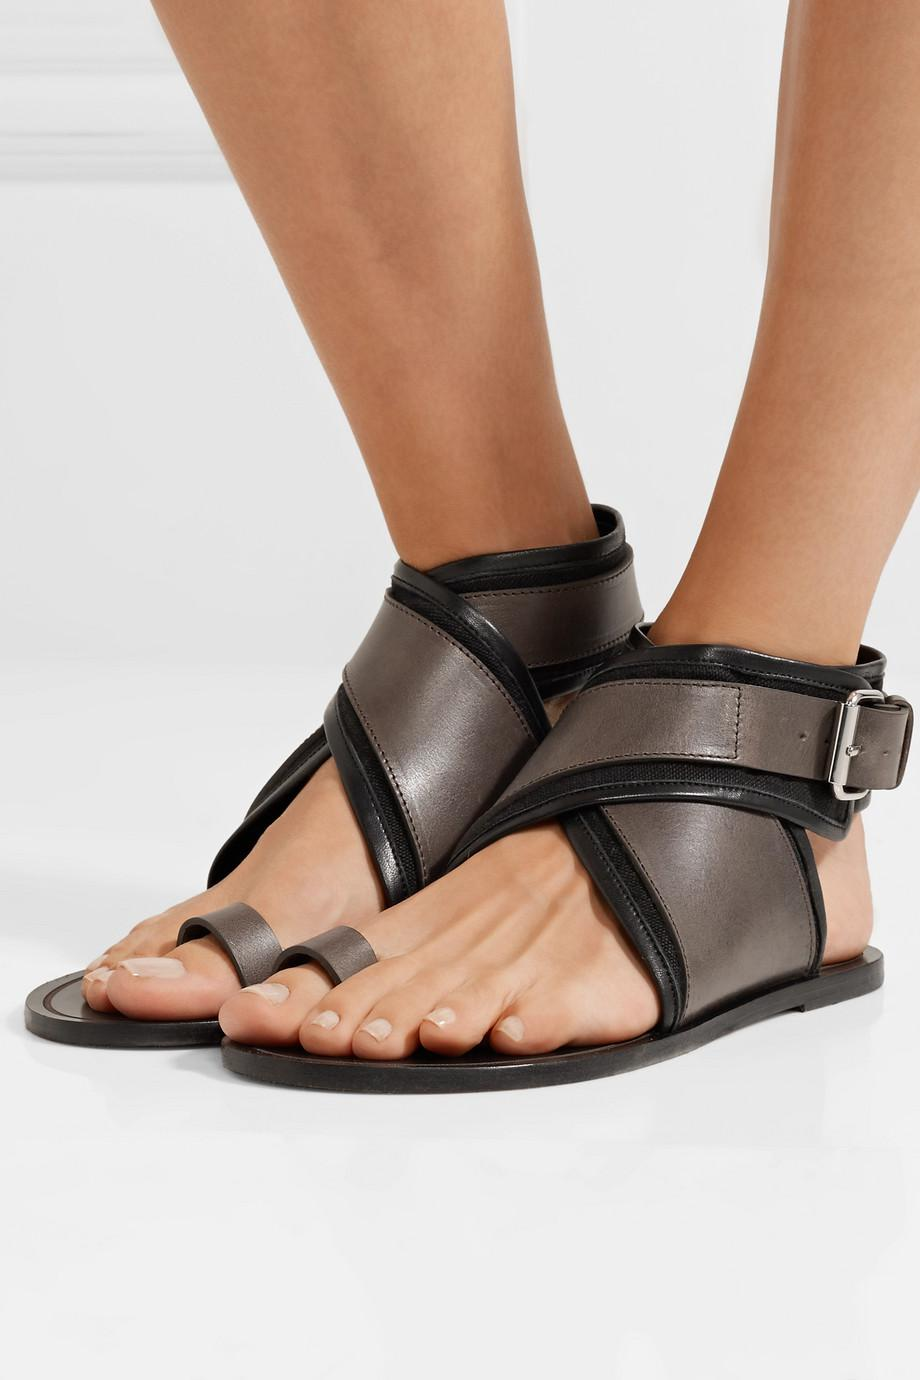 Outlet Low Cost Isabel Marant Johen Leather And Canvas Sandals Free Shipping View uZL4iH